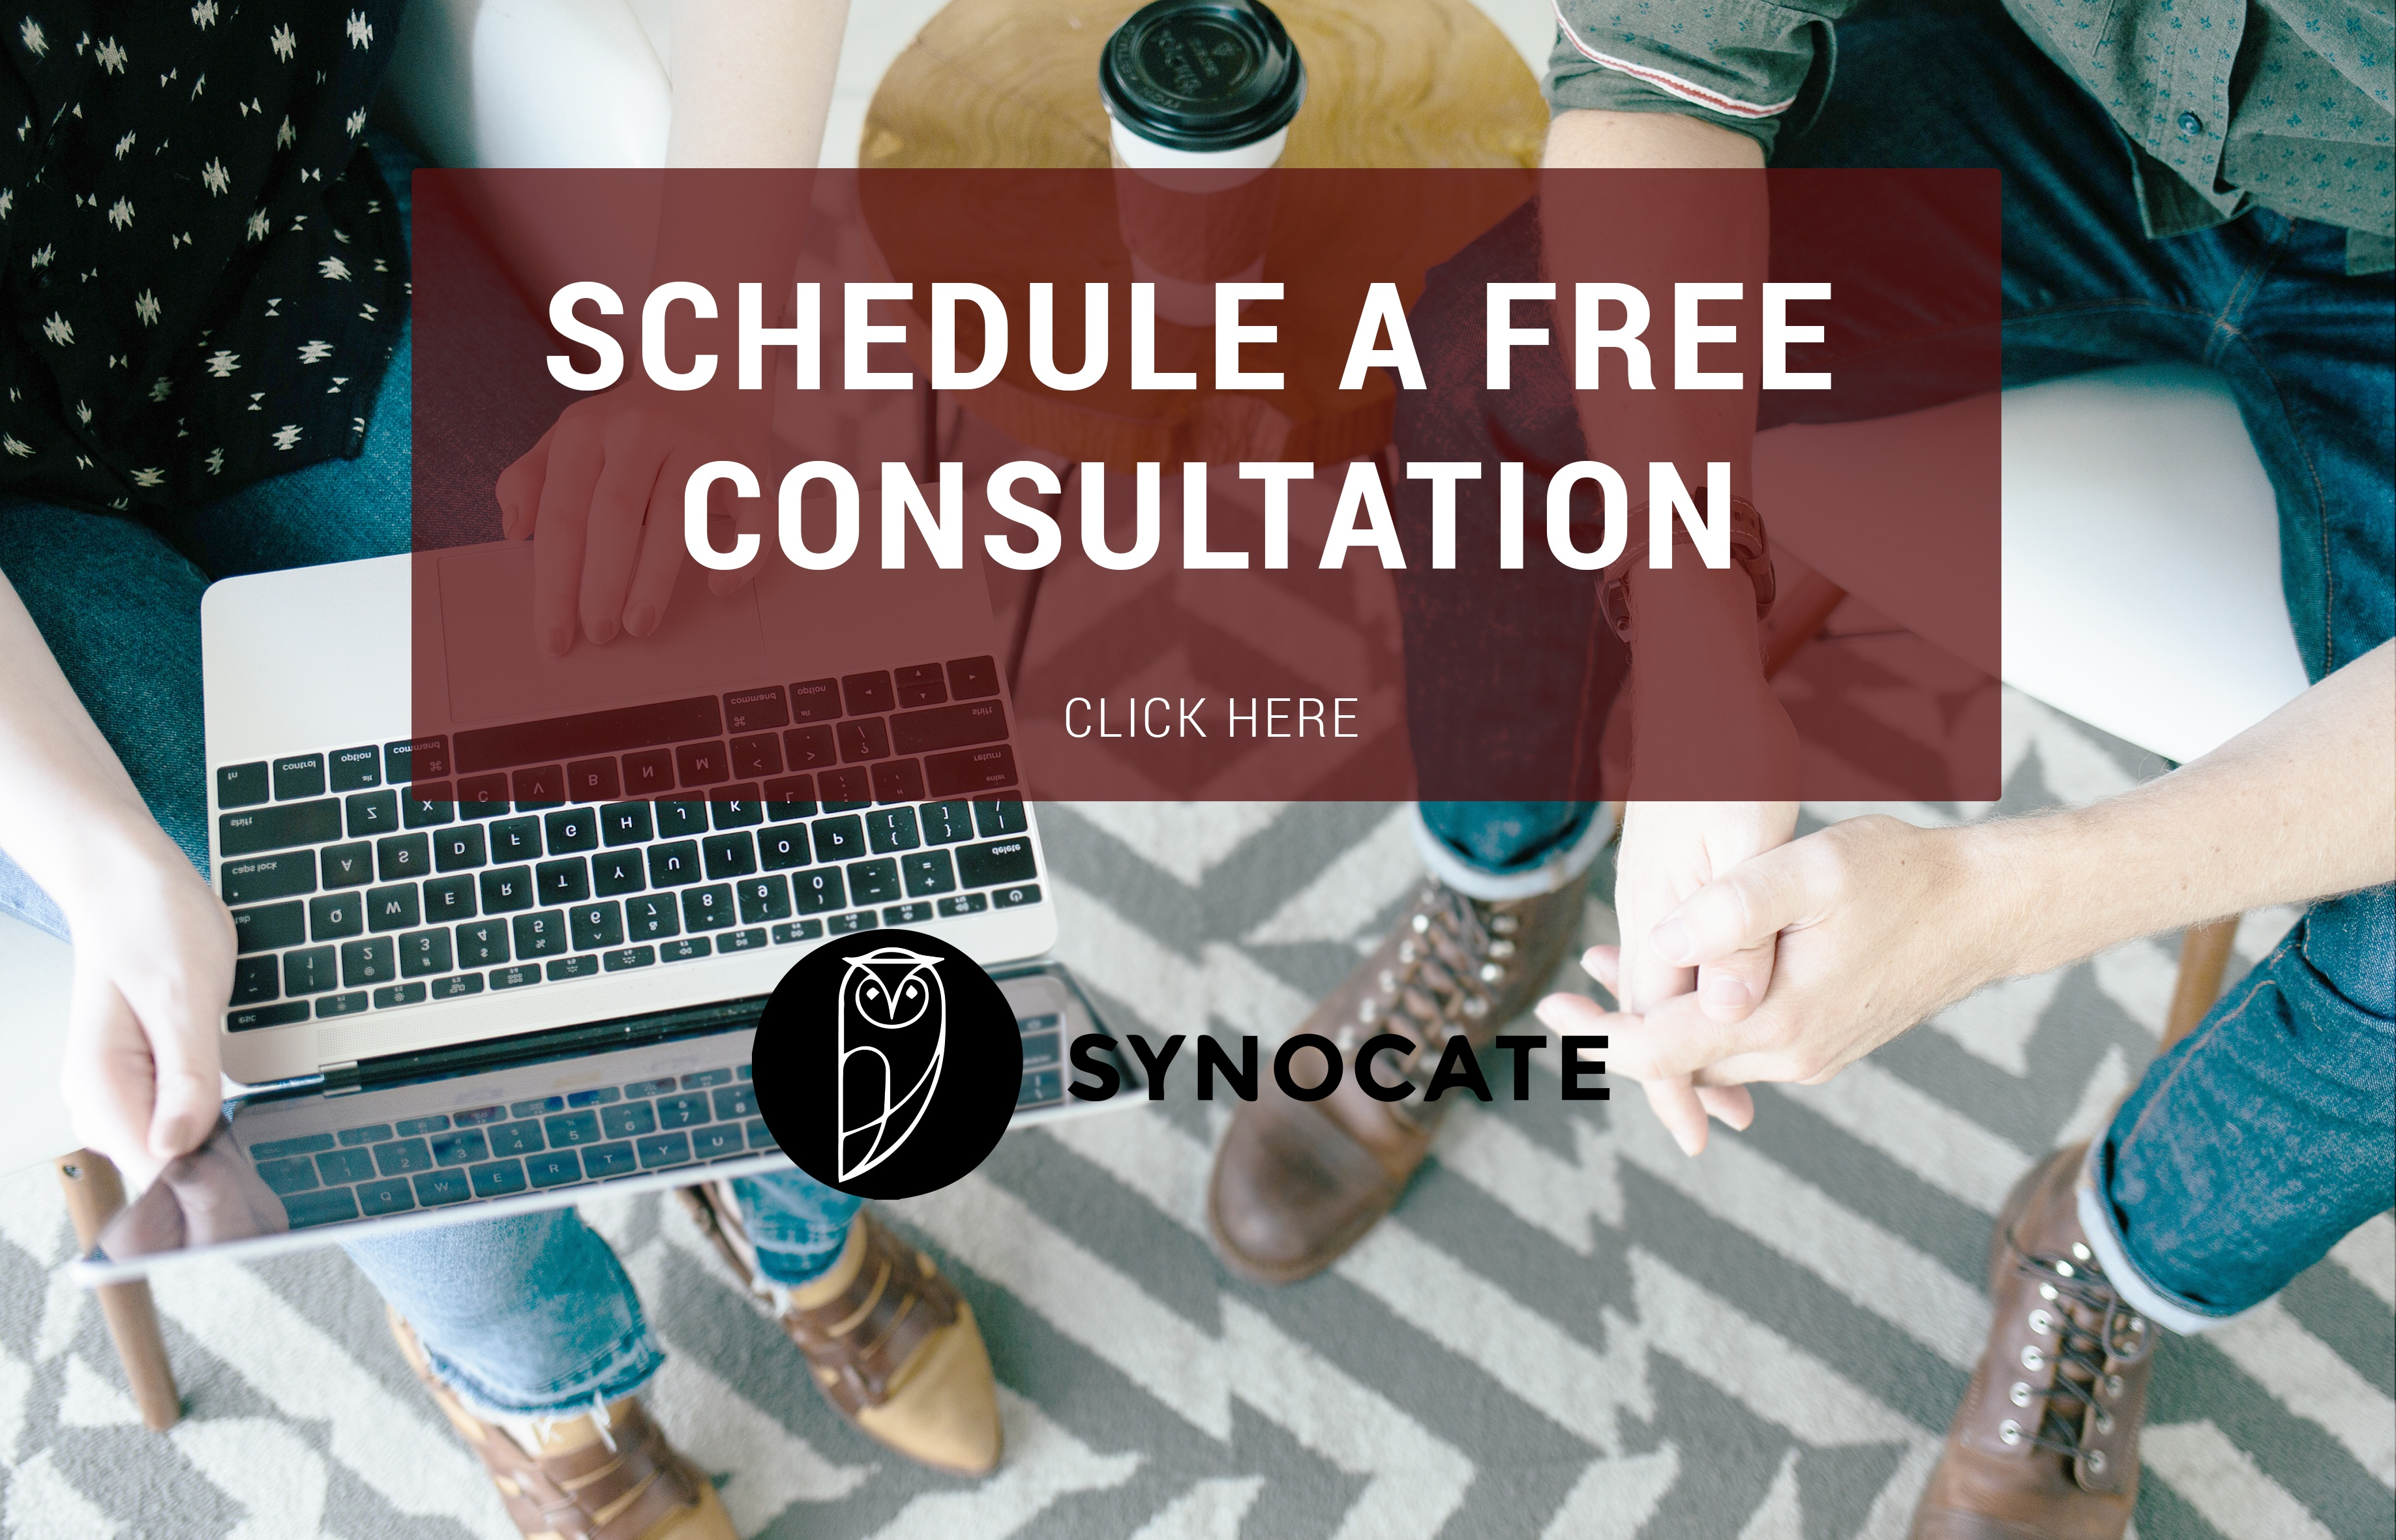 web graphicSchedule a free consultation-2.jpg